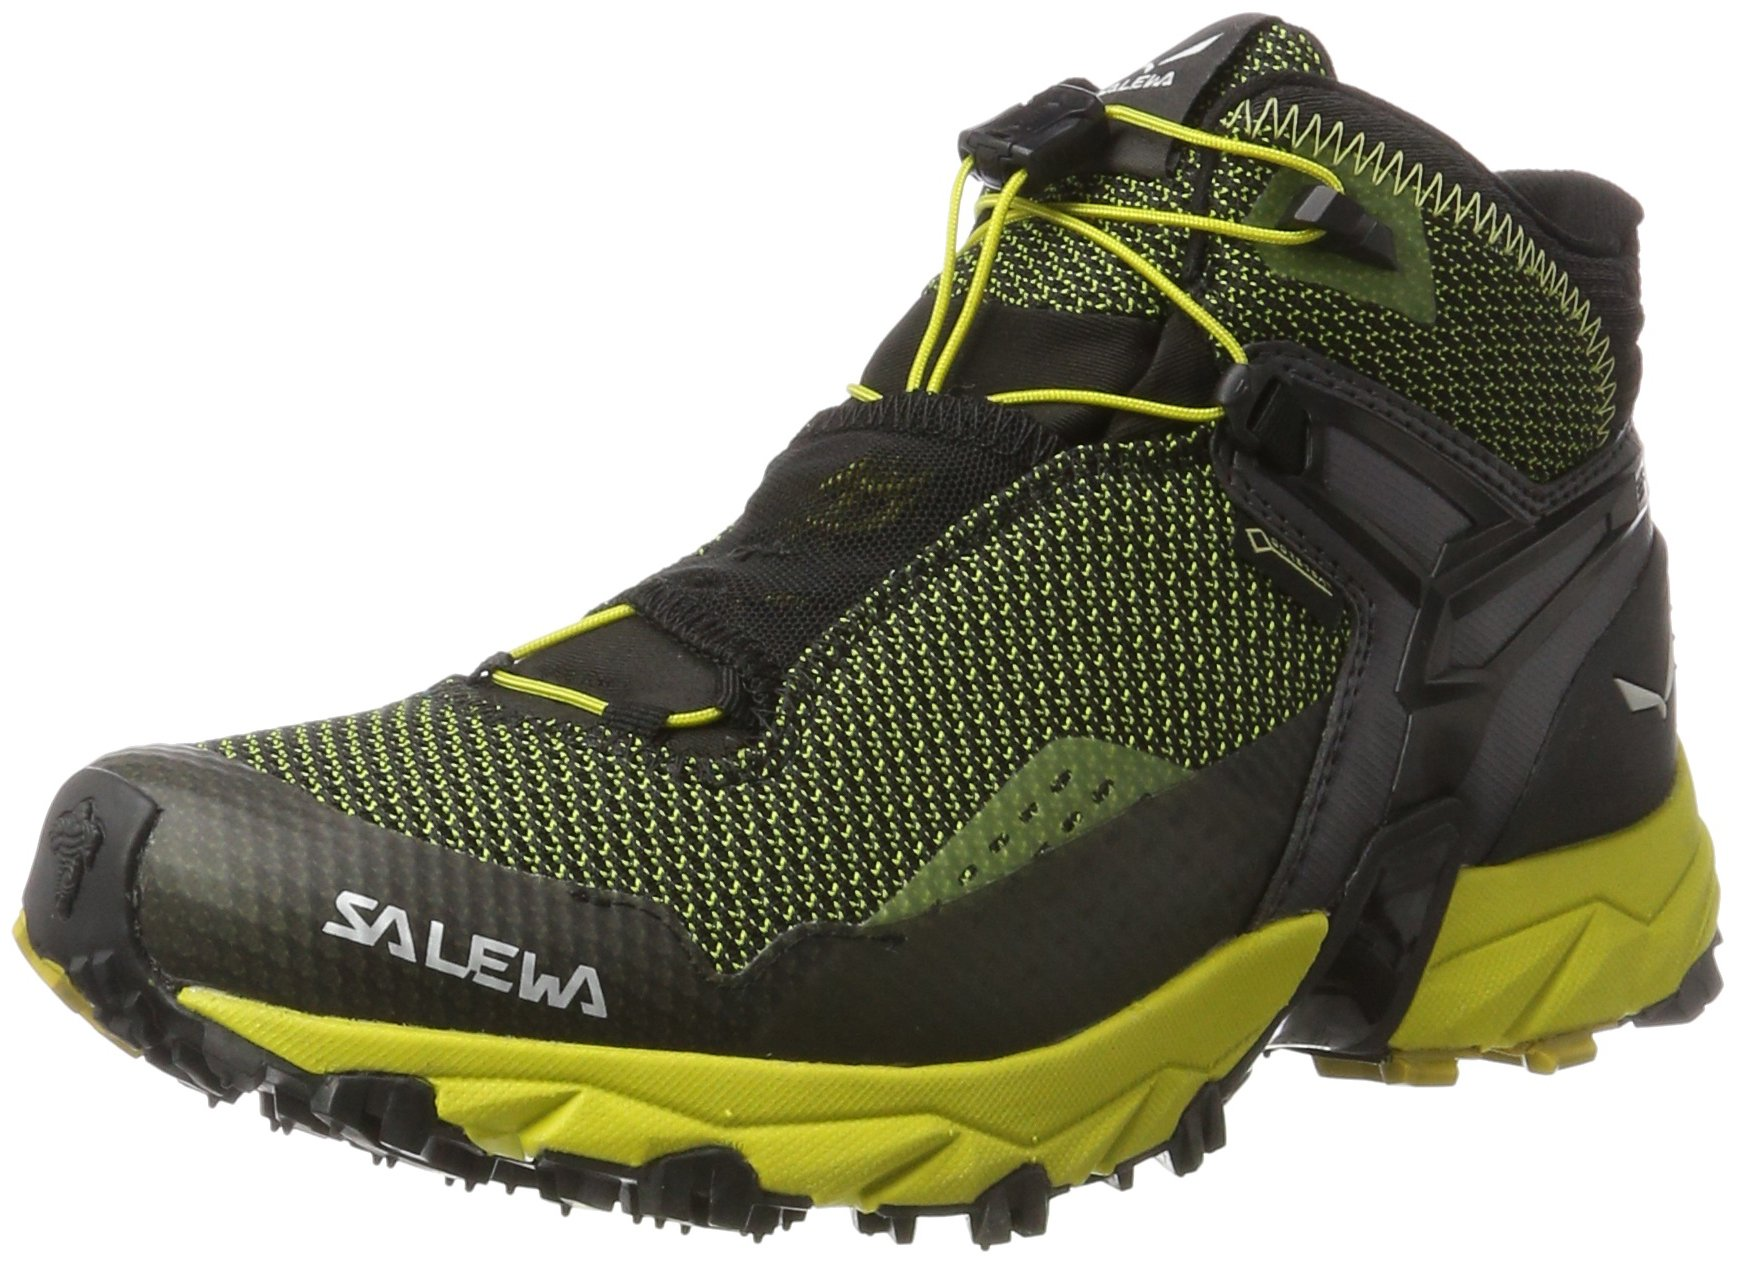 online retailer 439b0 36ac4 Salewa Men's Ms Ultra Flex Mid GTX High Rise Hiking Boots